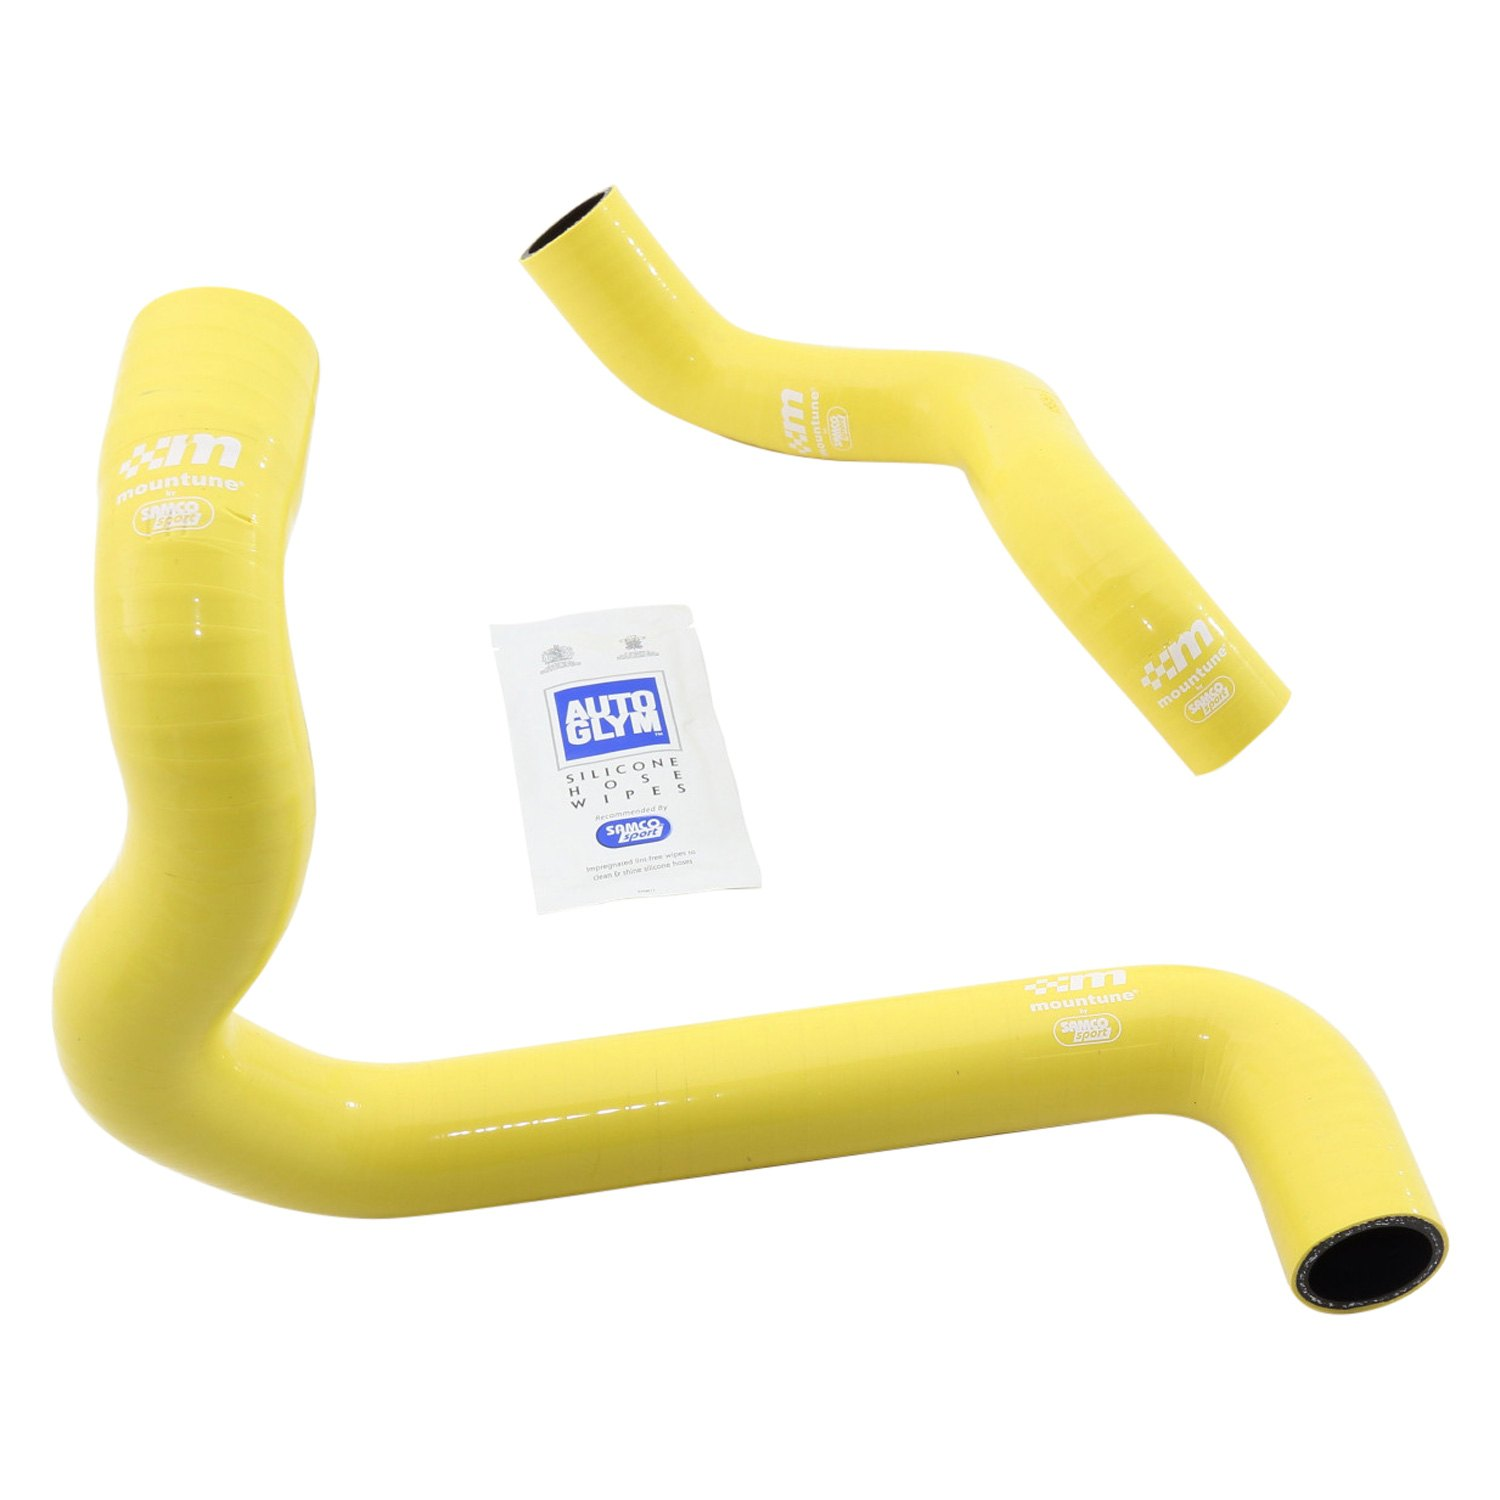 Mountune ultra high performance red silicone radiator hose